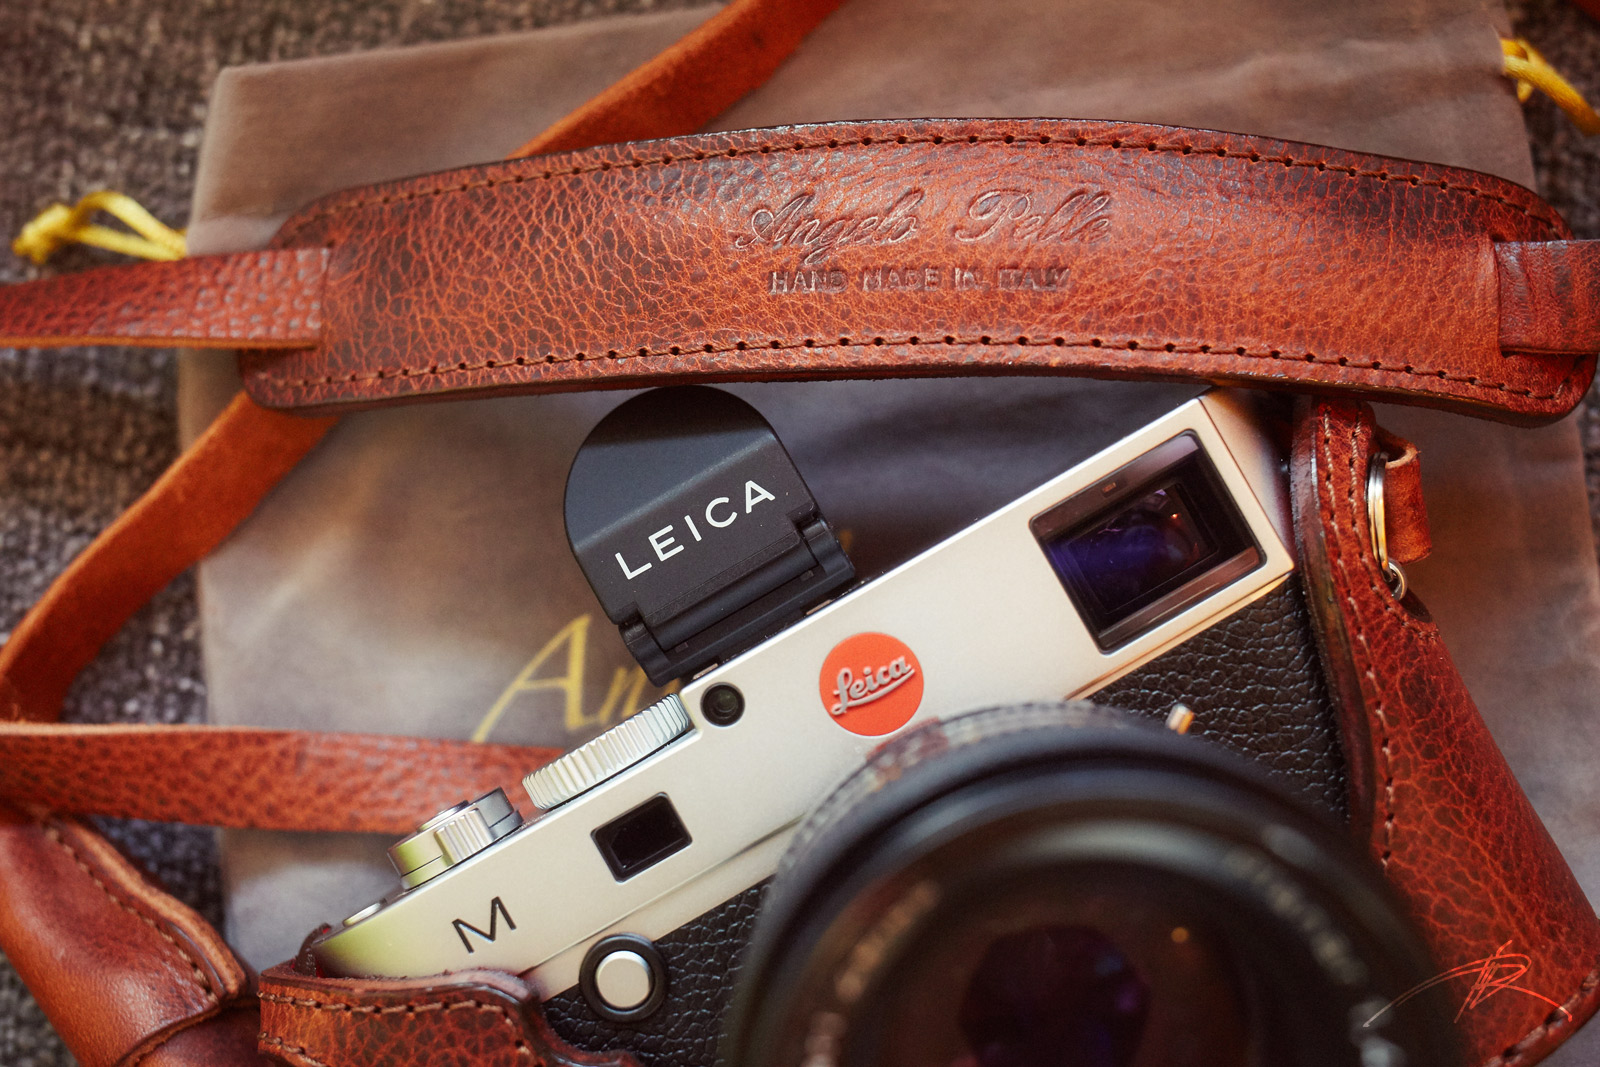 Leica M240 with Angelo Pelle half case